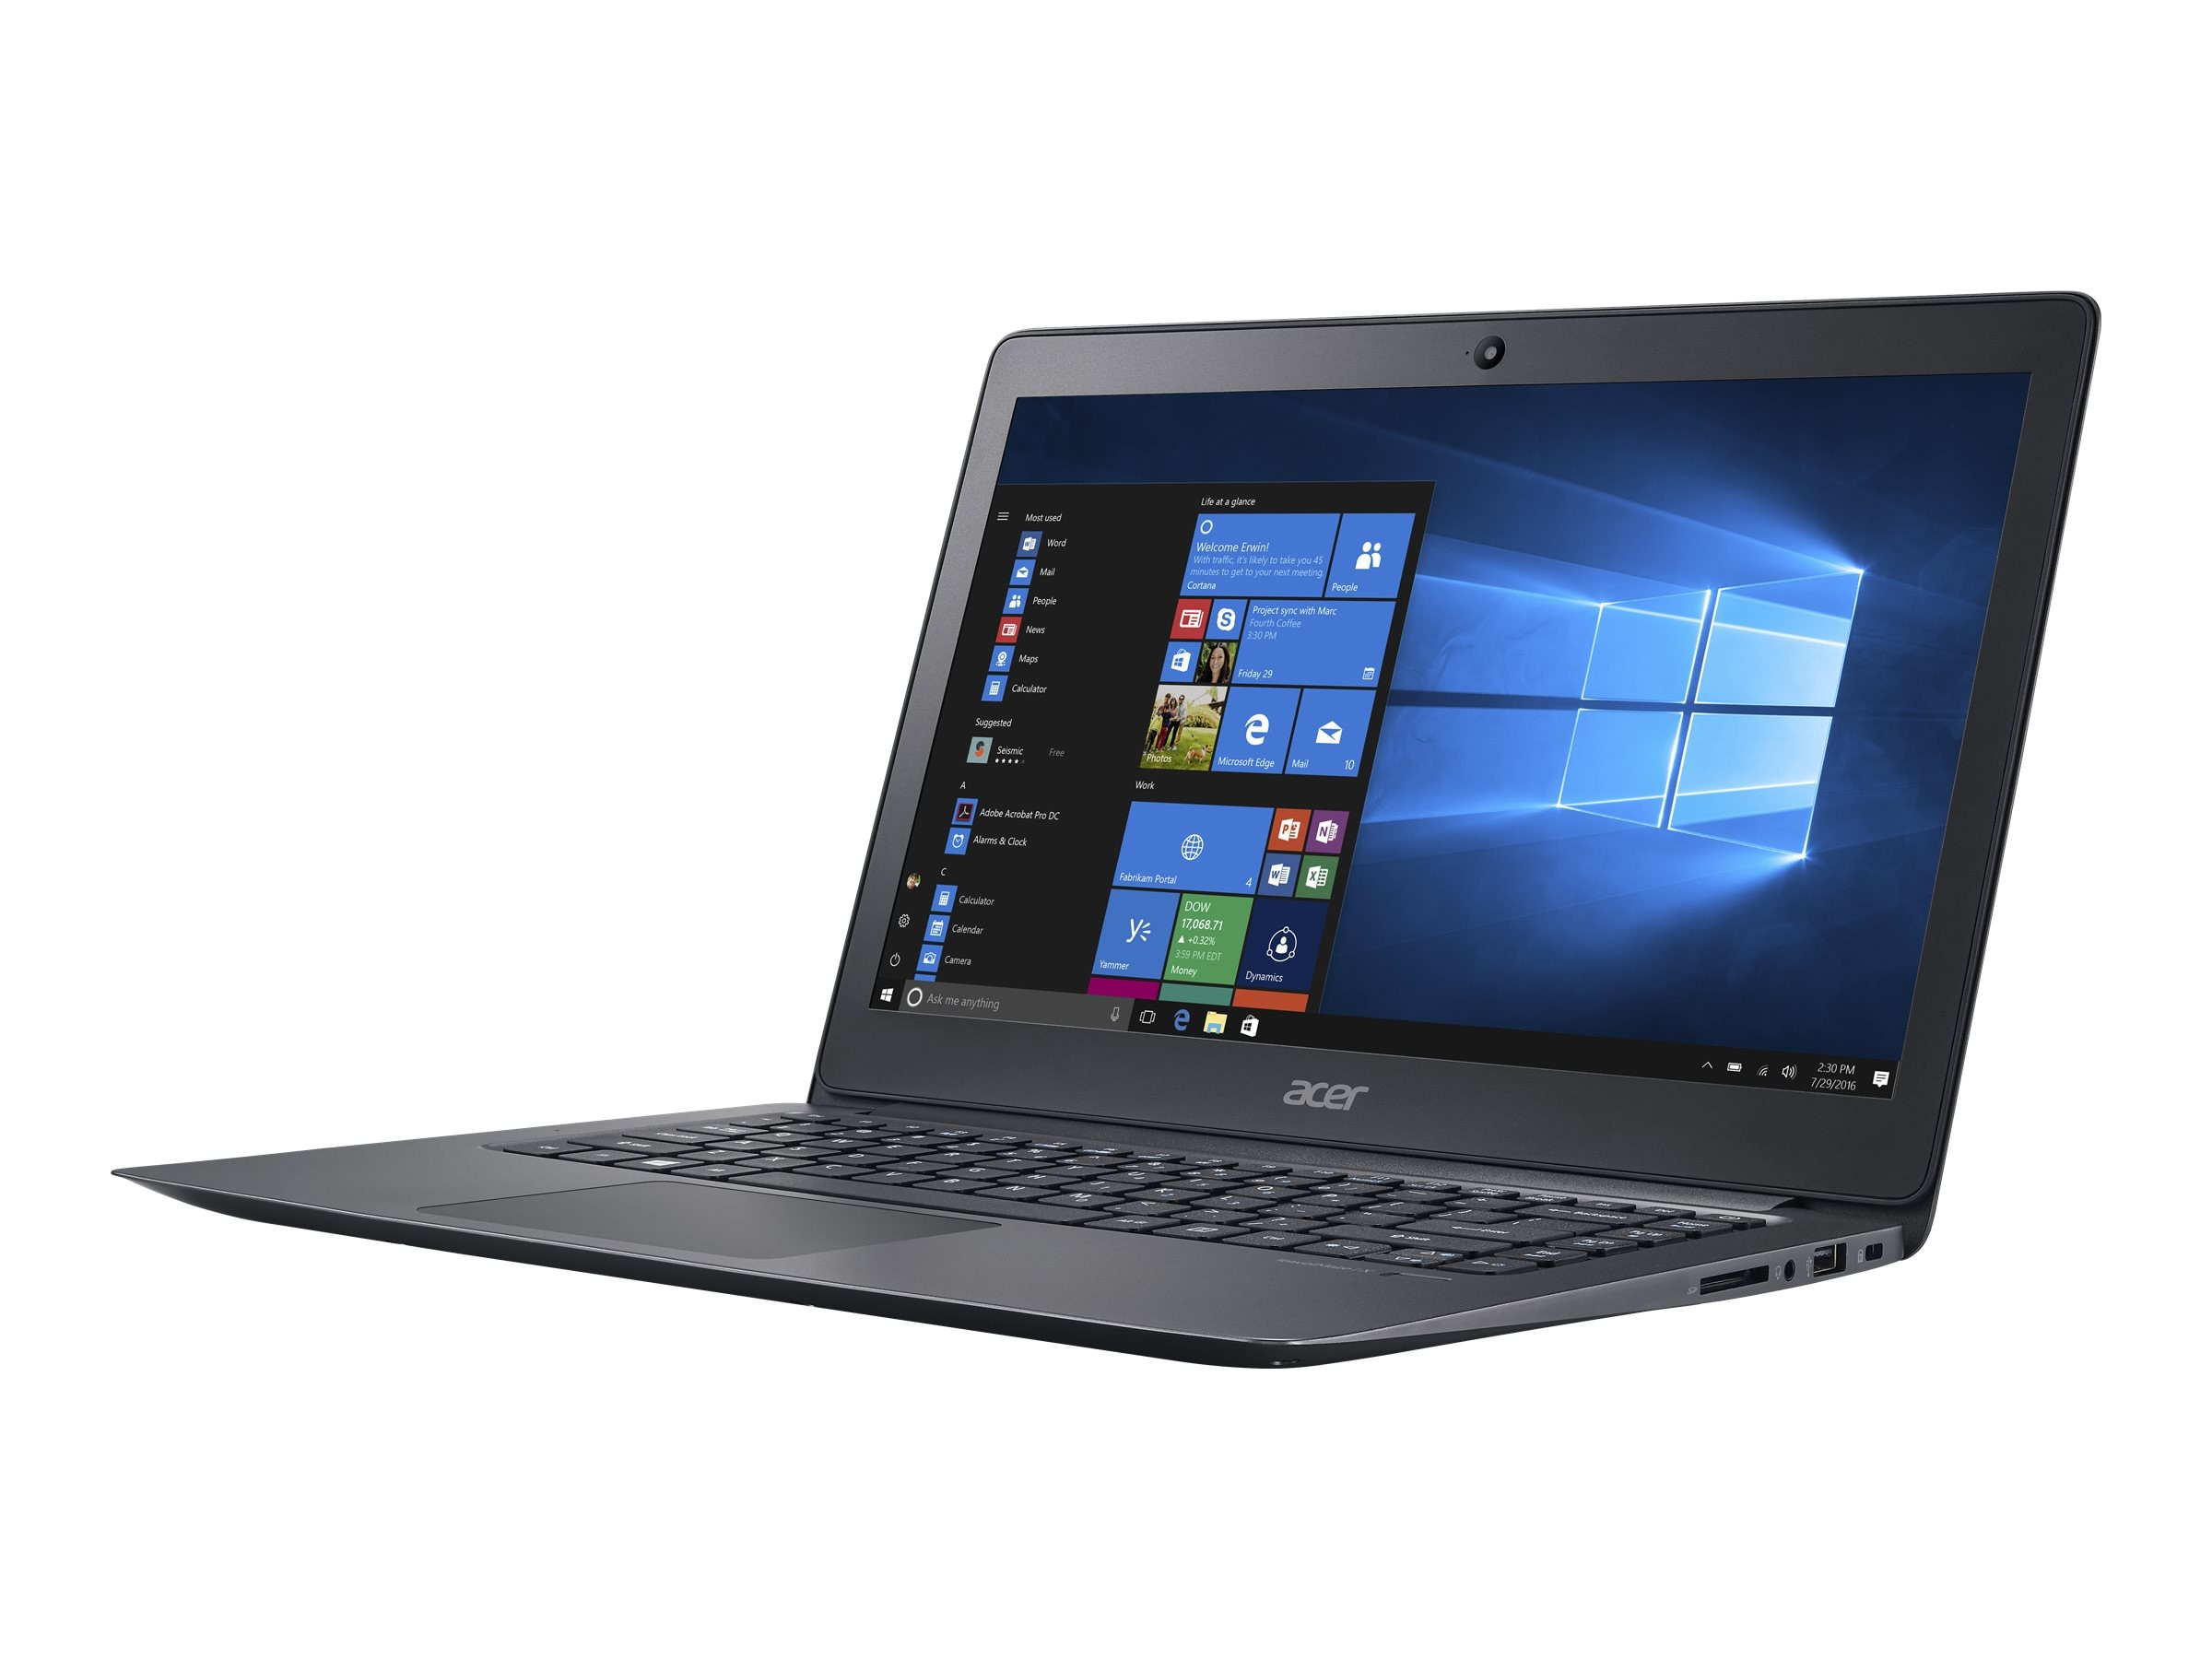 Acer TravelMate X349-M-32PH 2.3GHz Core i3 14in display, NX.VDFAA.007, 32718607, Notebooks